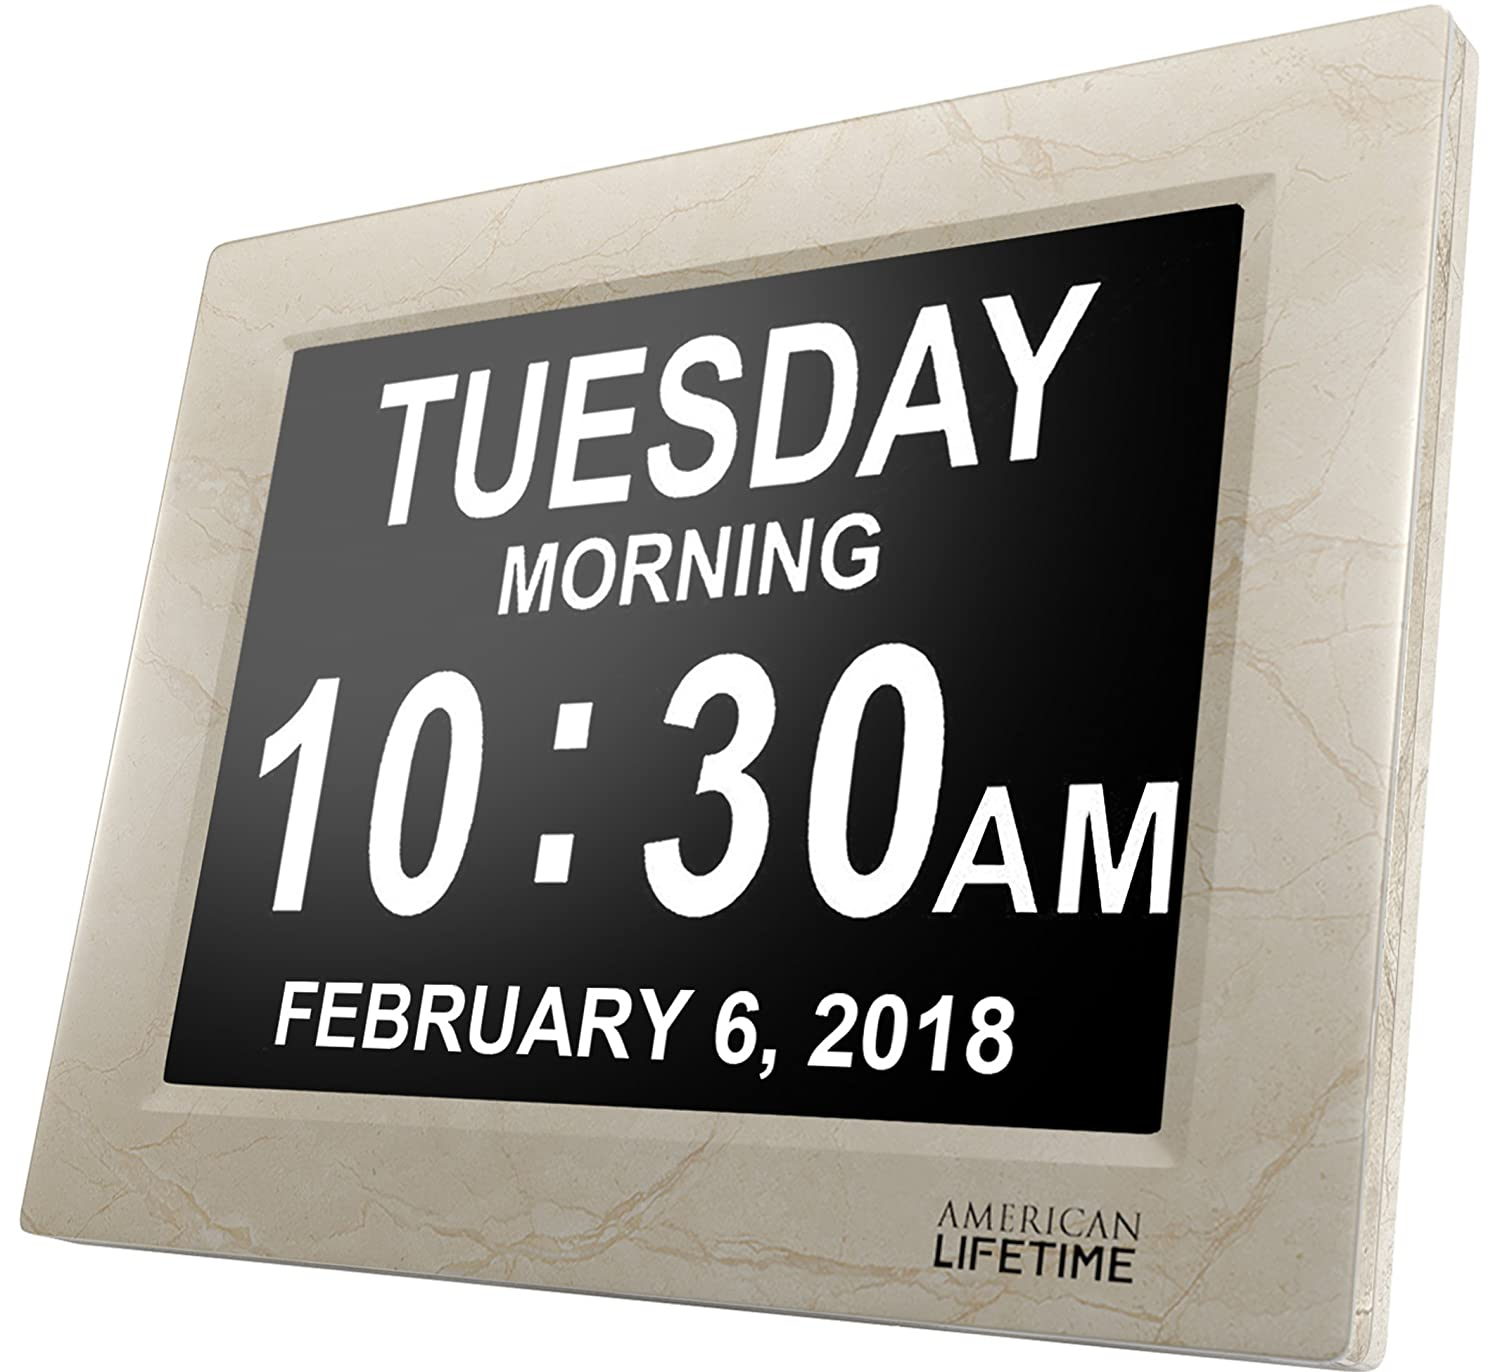 American Lifetime [Newest Version] Day Clock - Extra Large Impaired Vision Digital Clock with Battery Backup & 5 Alarm Options (Black Finish) DCB2